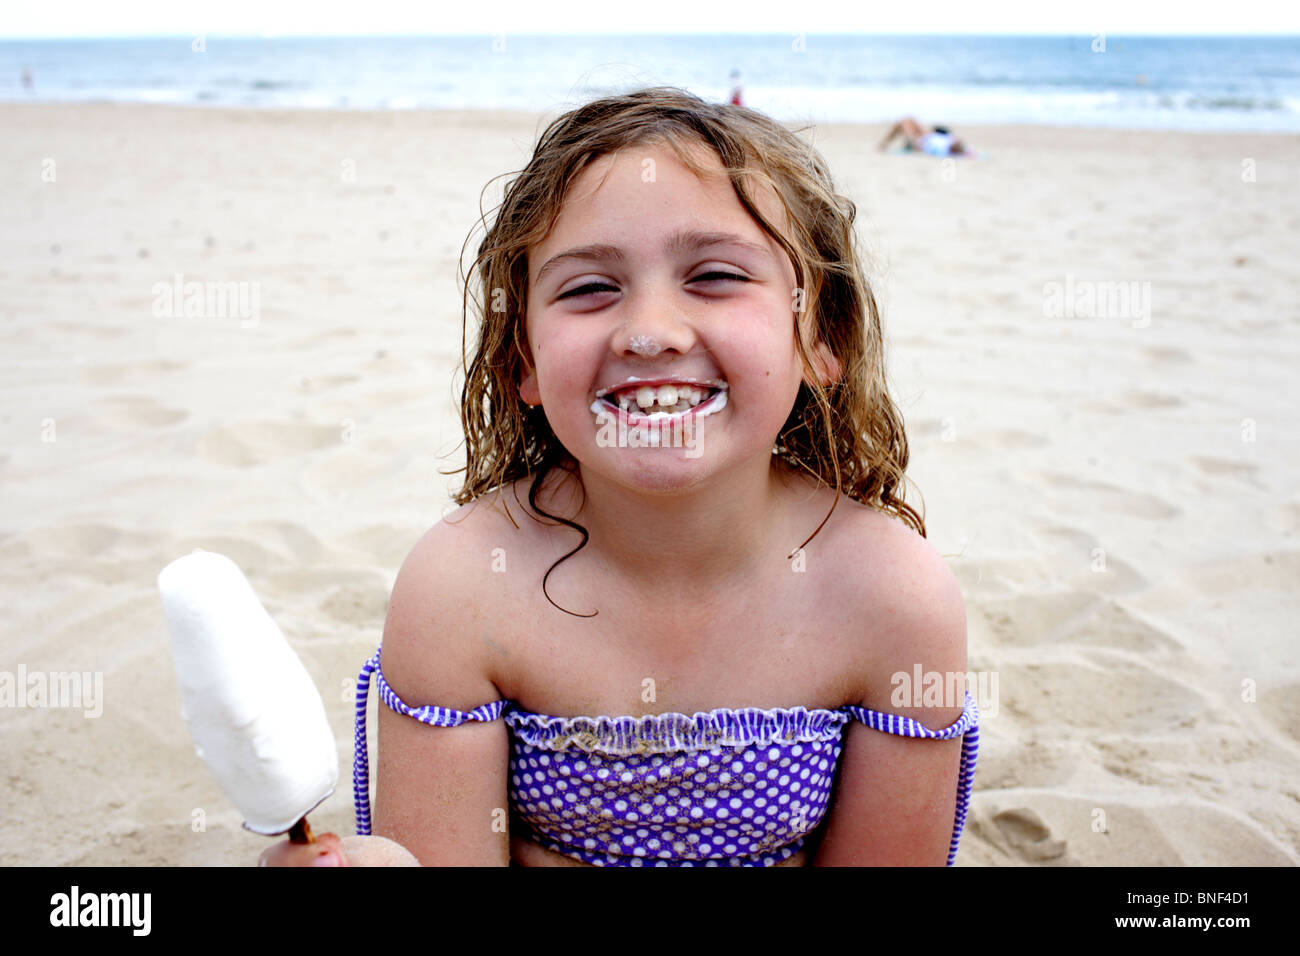 lolly model Stock Photo - Young Girl Eating Ice Lolly on Beach. Model Released